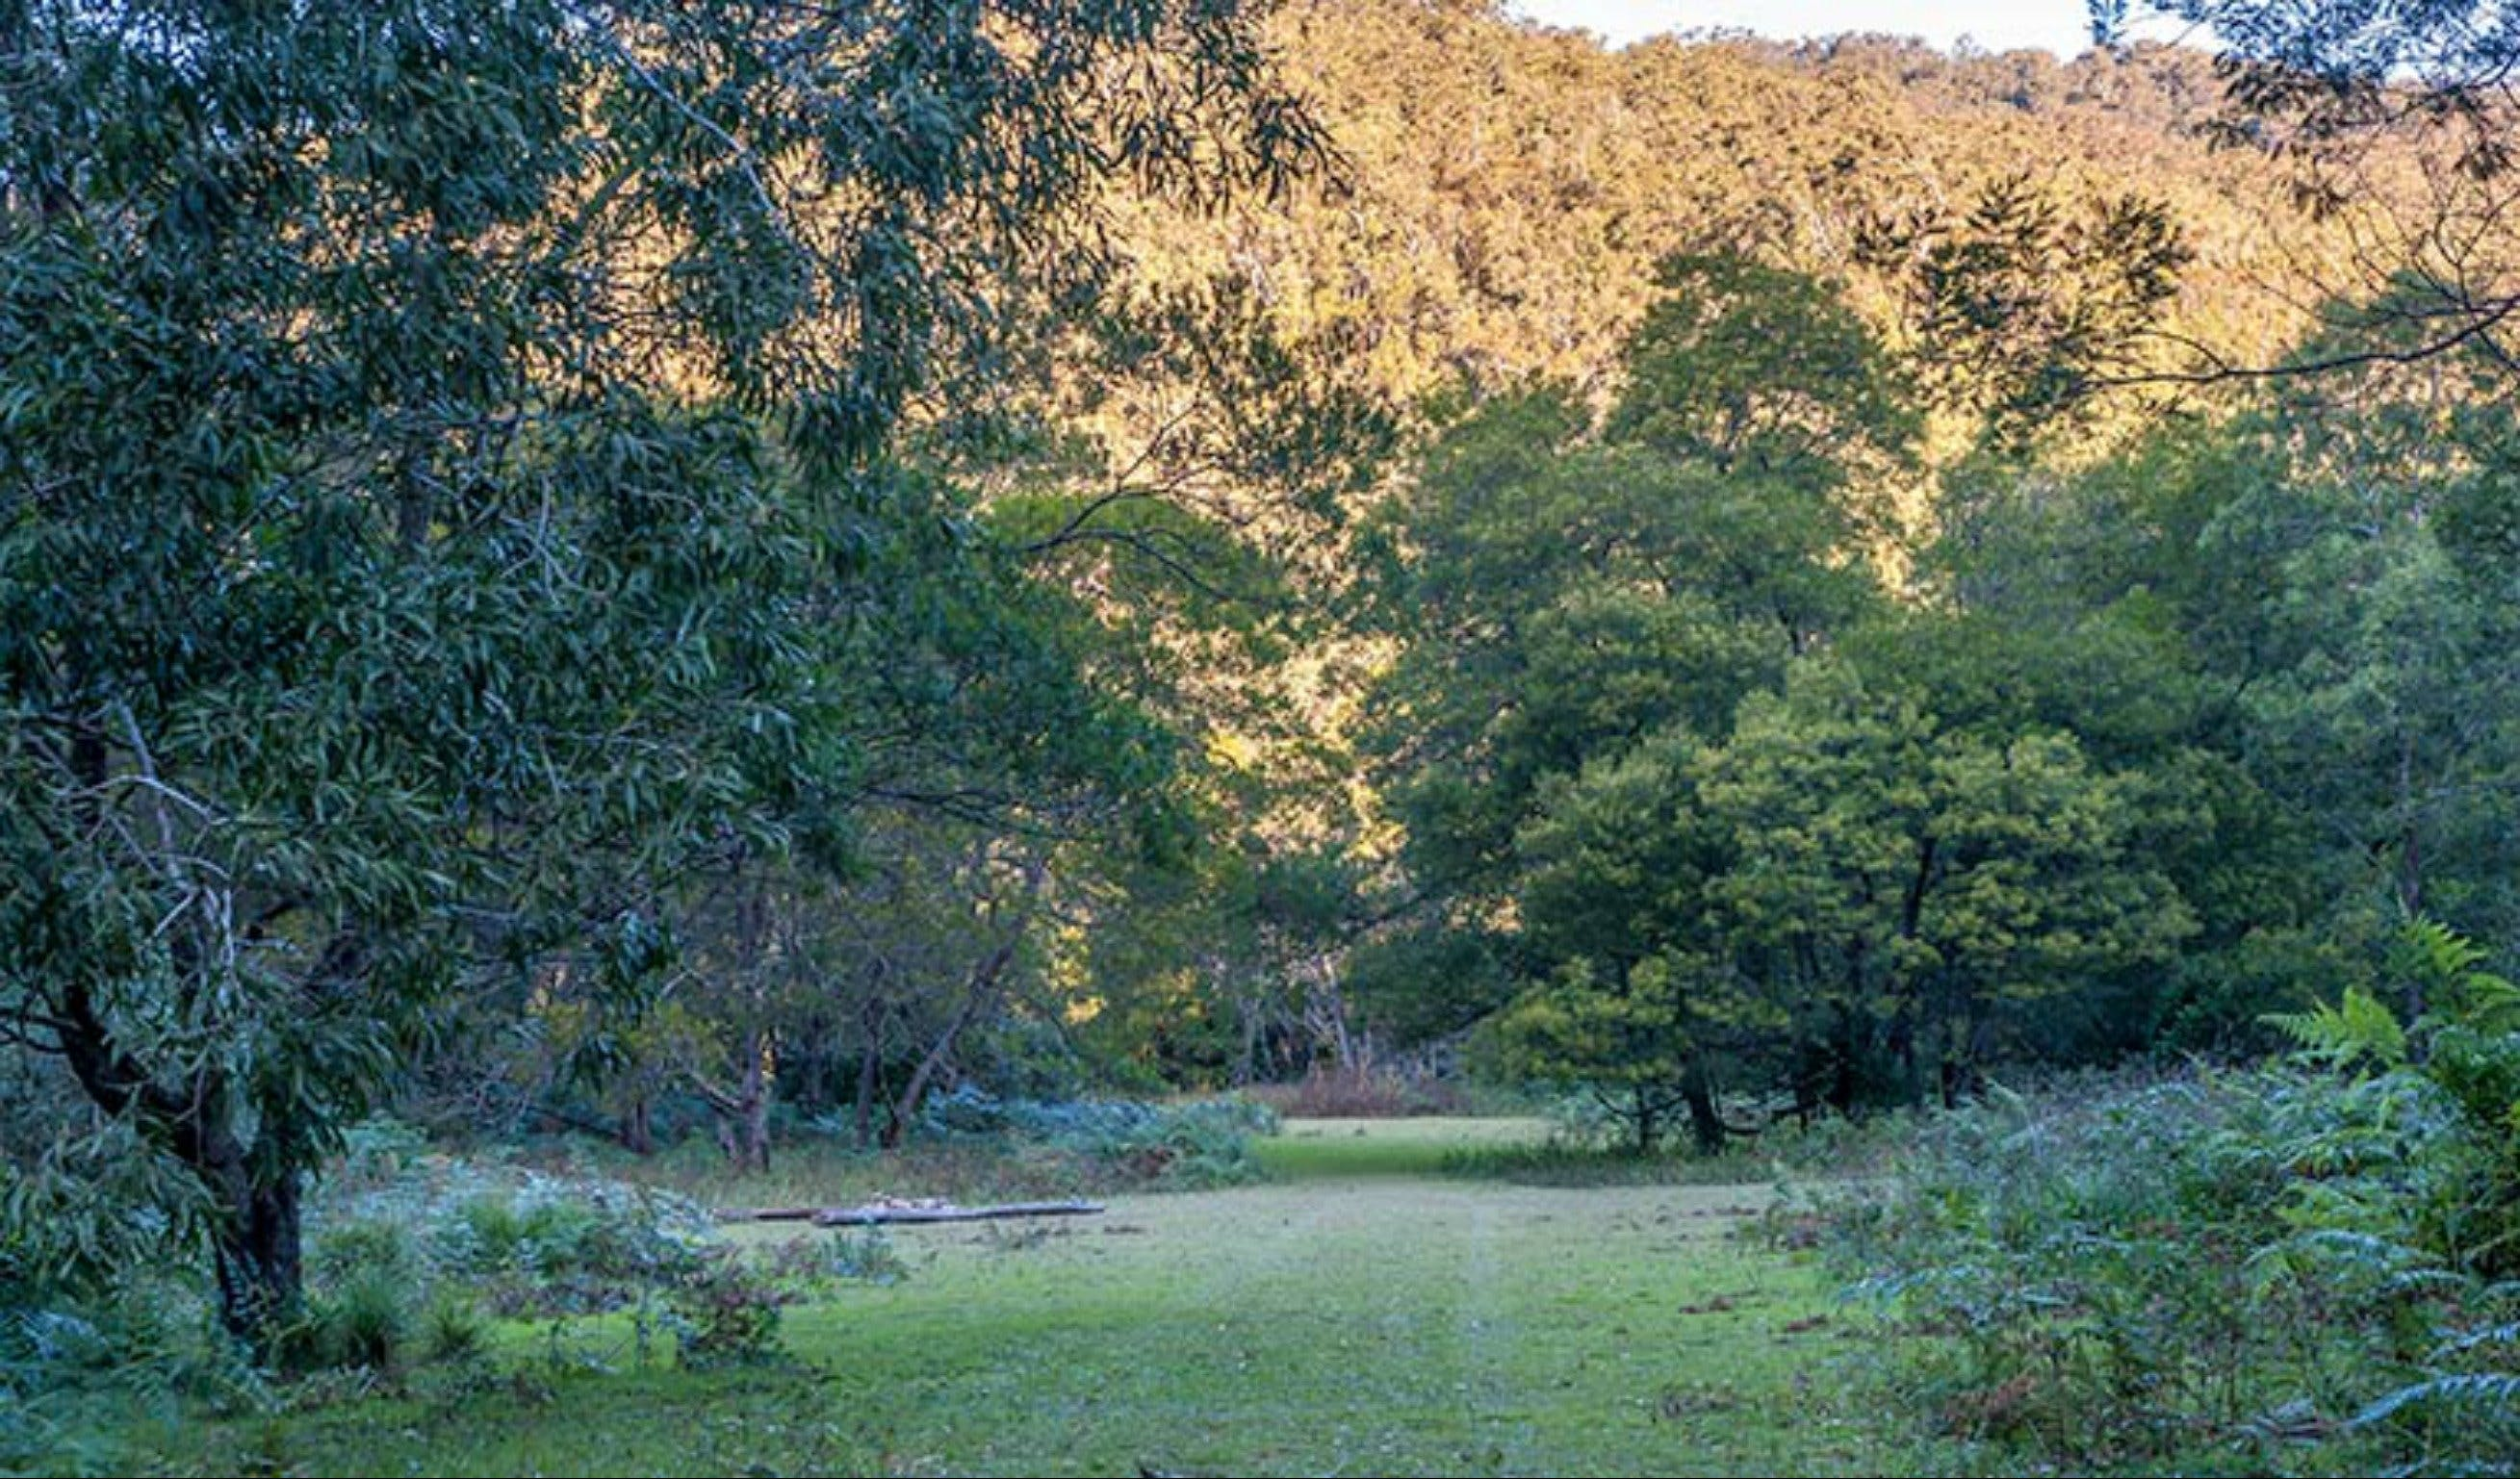 Griffins walking track - Accommodation Gold Coast